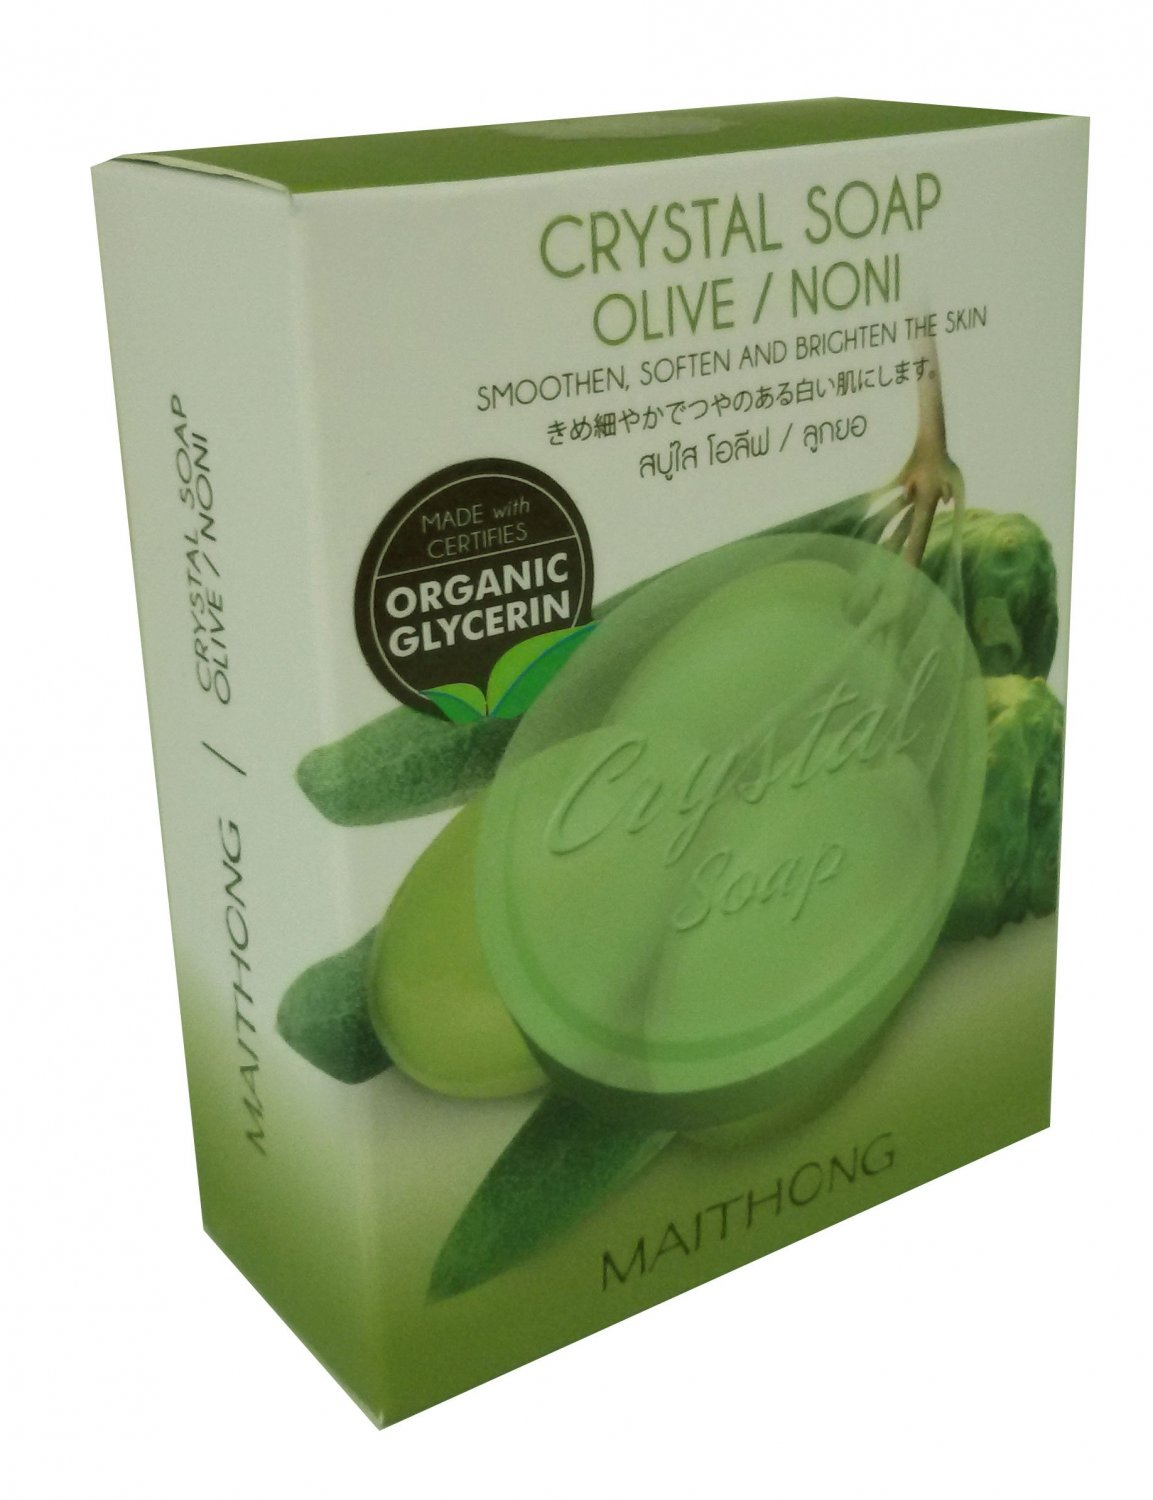 5x Maithong Olive & Noni Crystal Soap, Smoothen, Soften and Brighten